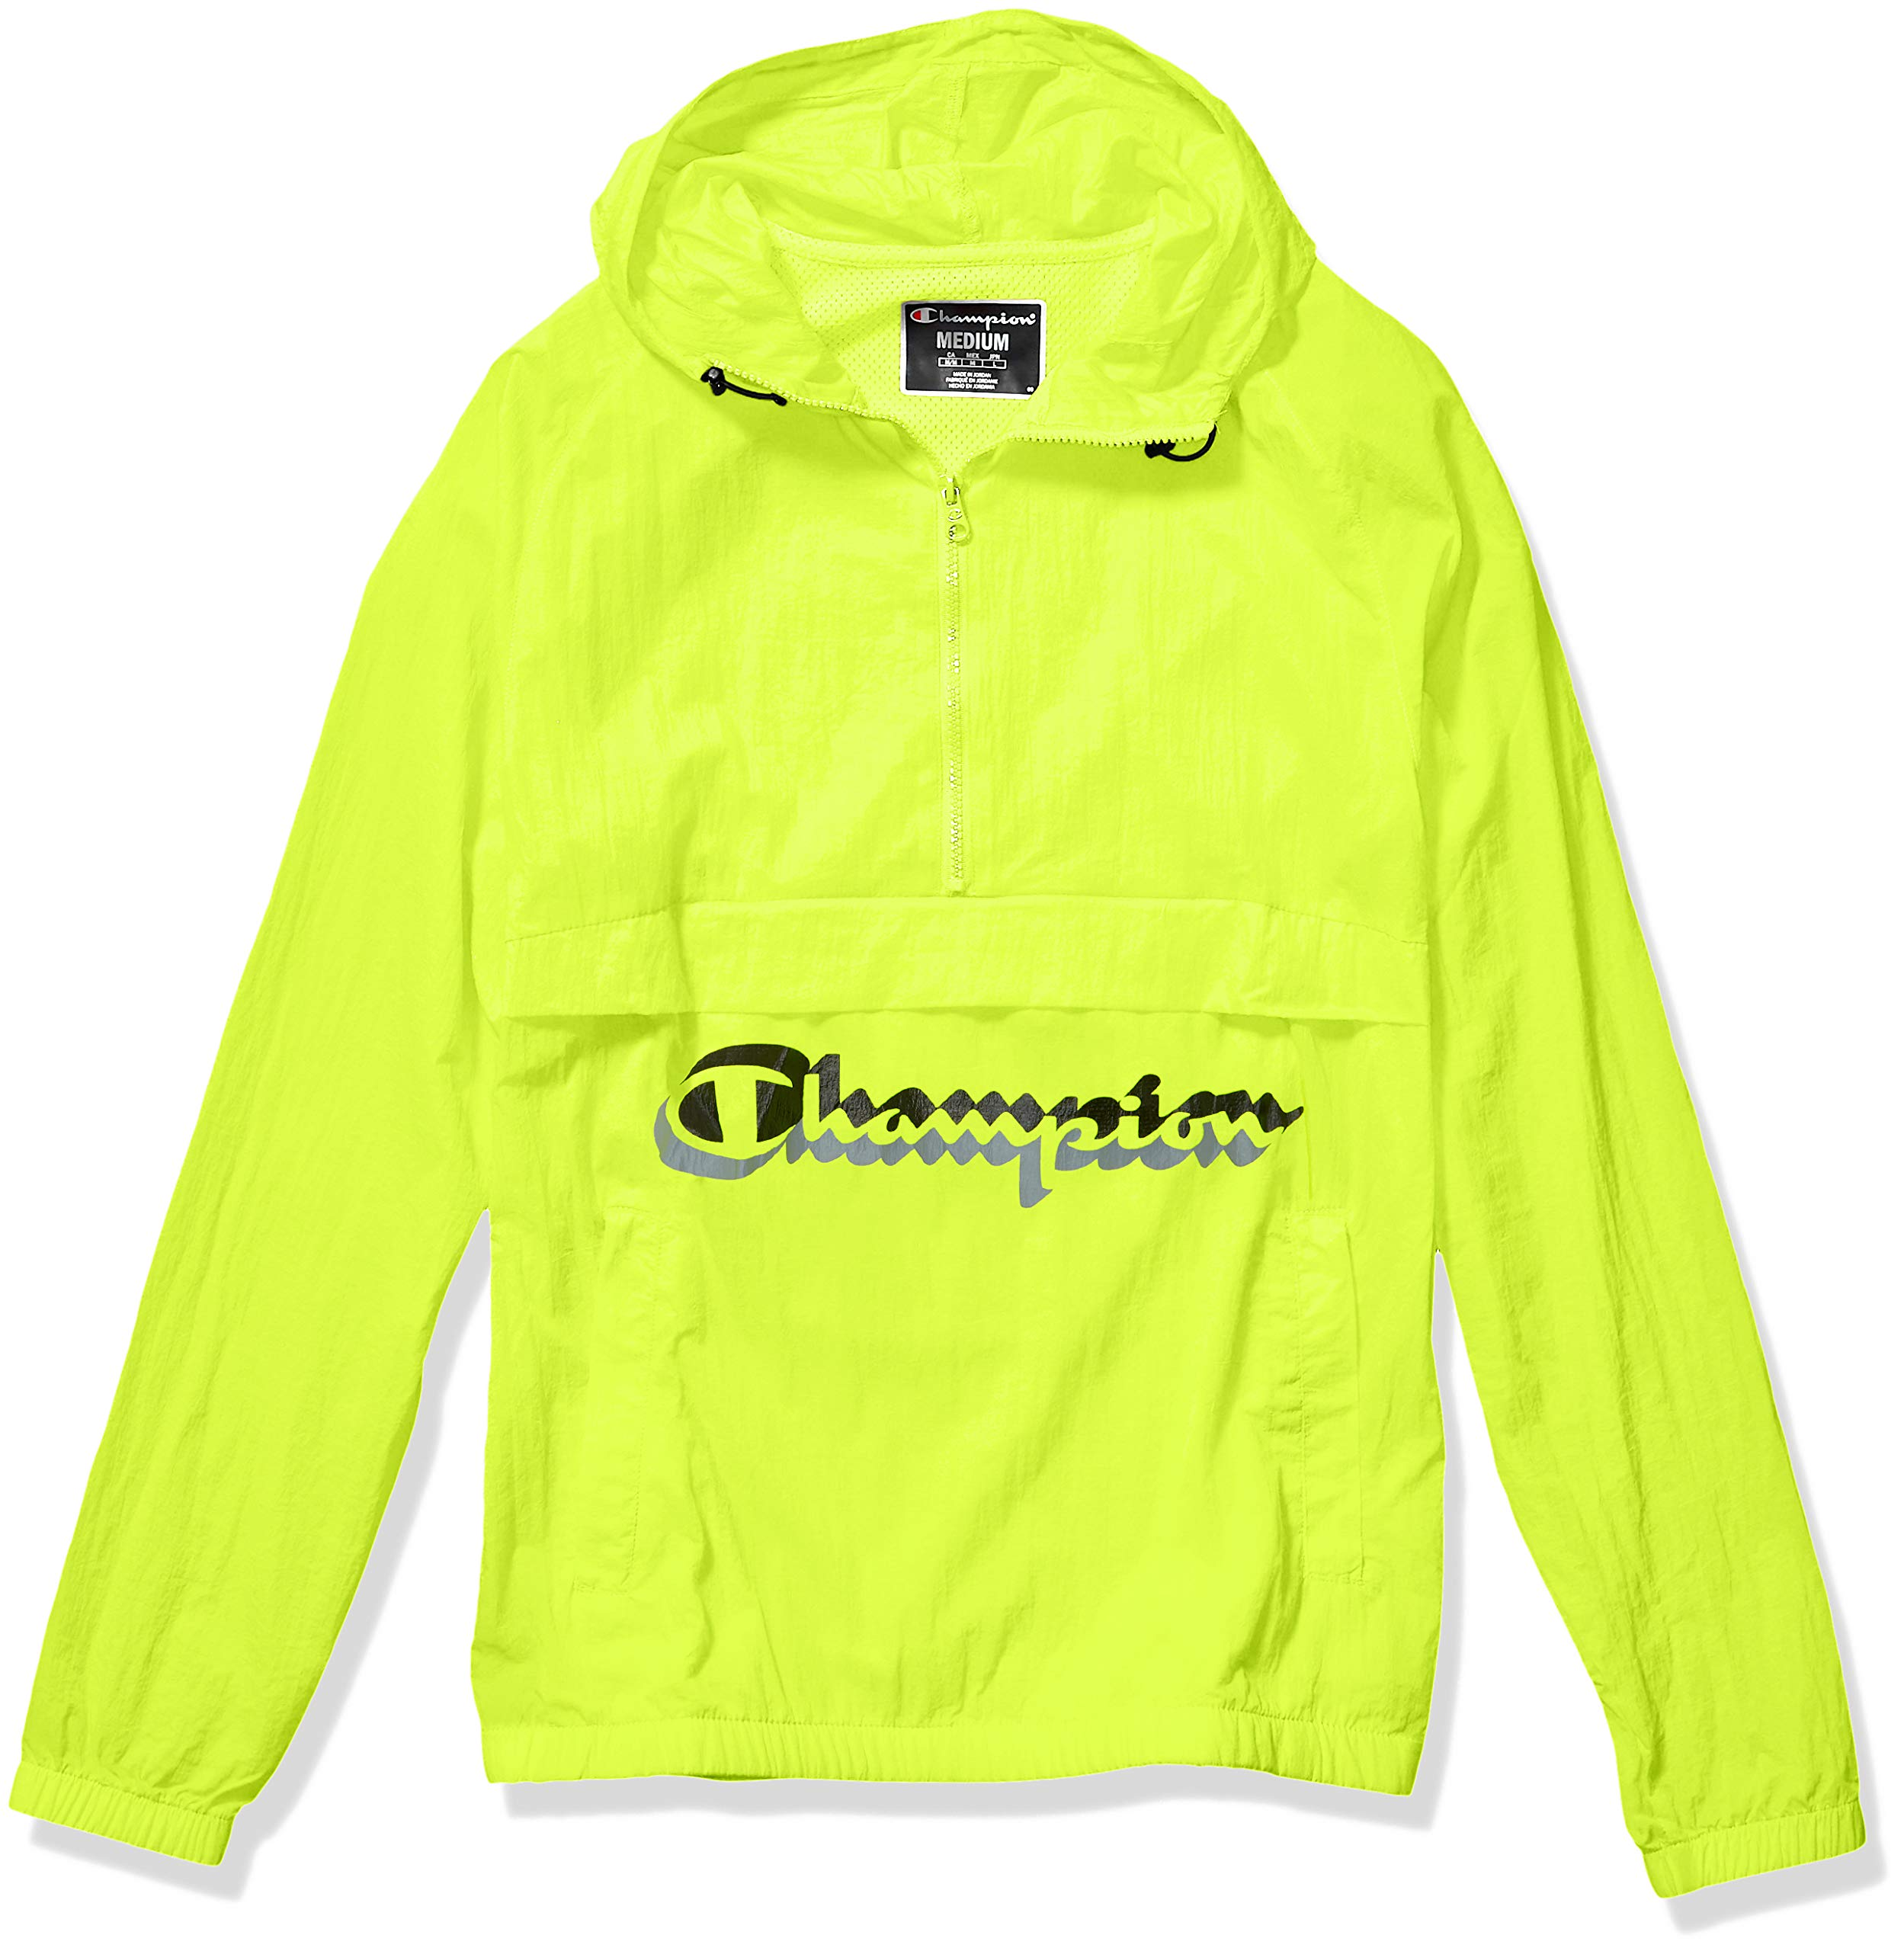 Champion LIFE Men's Anorak Windbreaker, neon Light w/Shadow Script, Small by Champion LIFE